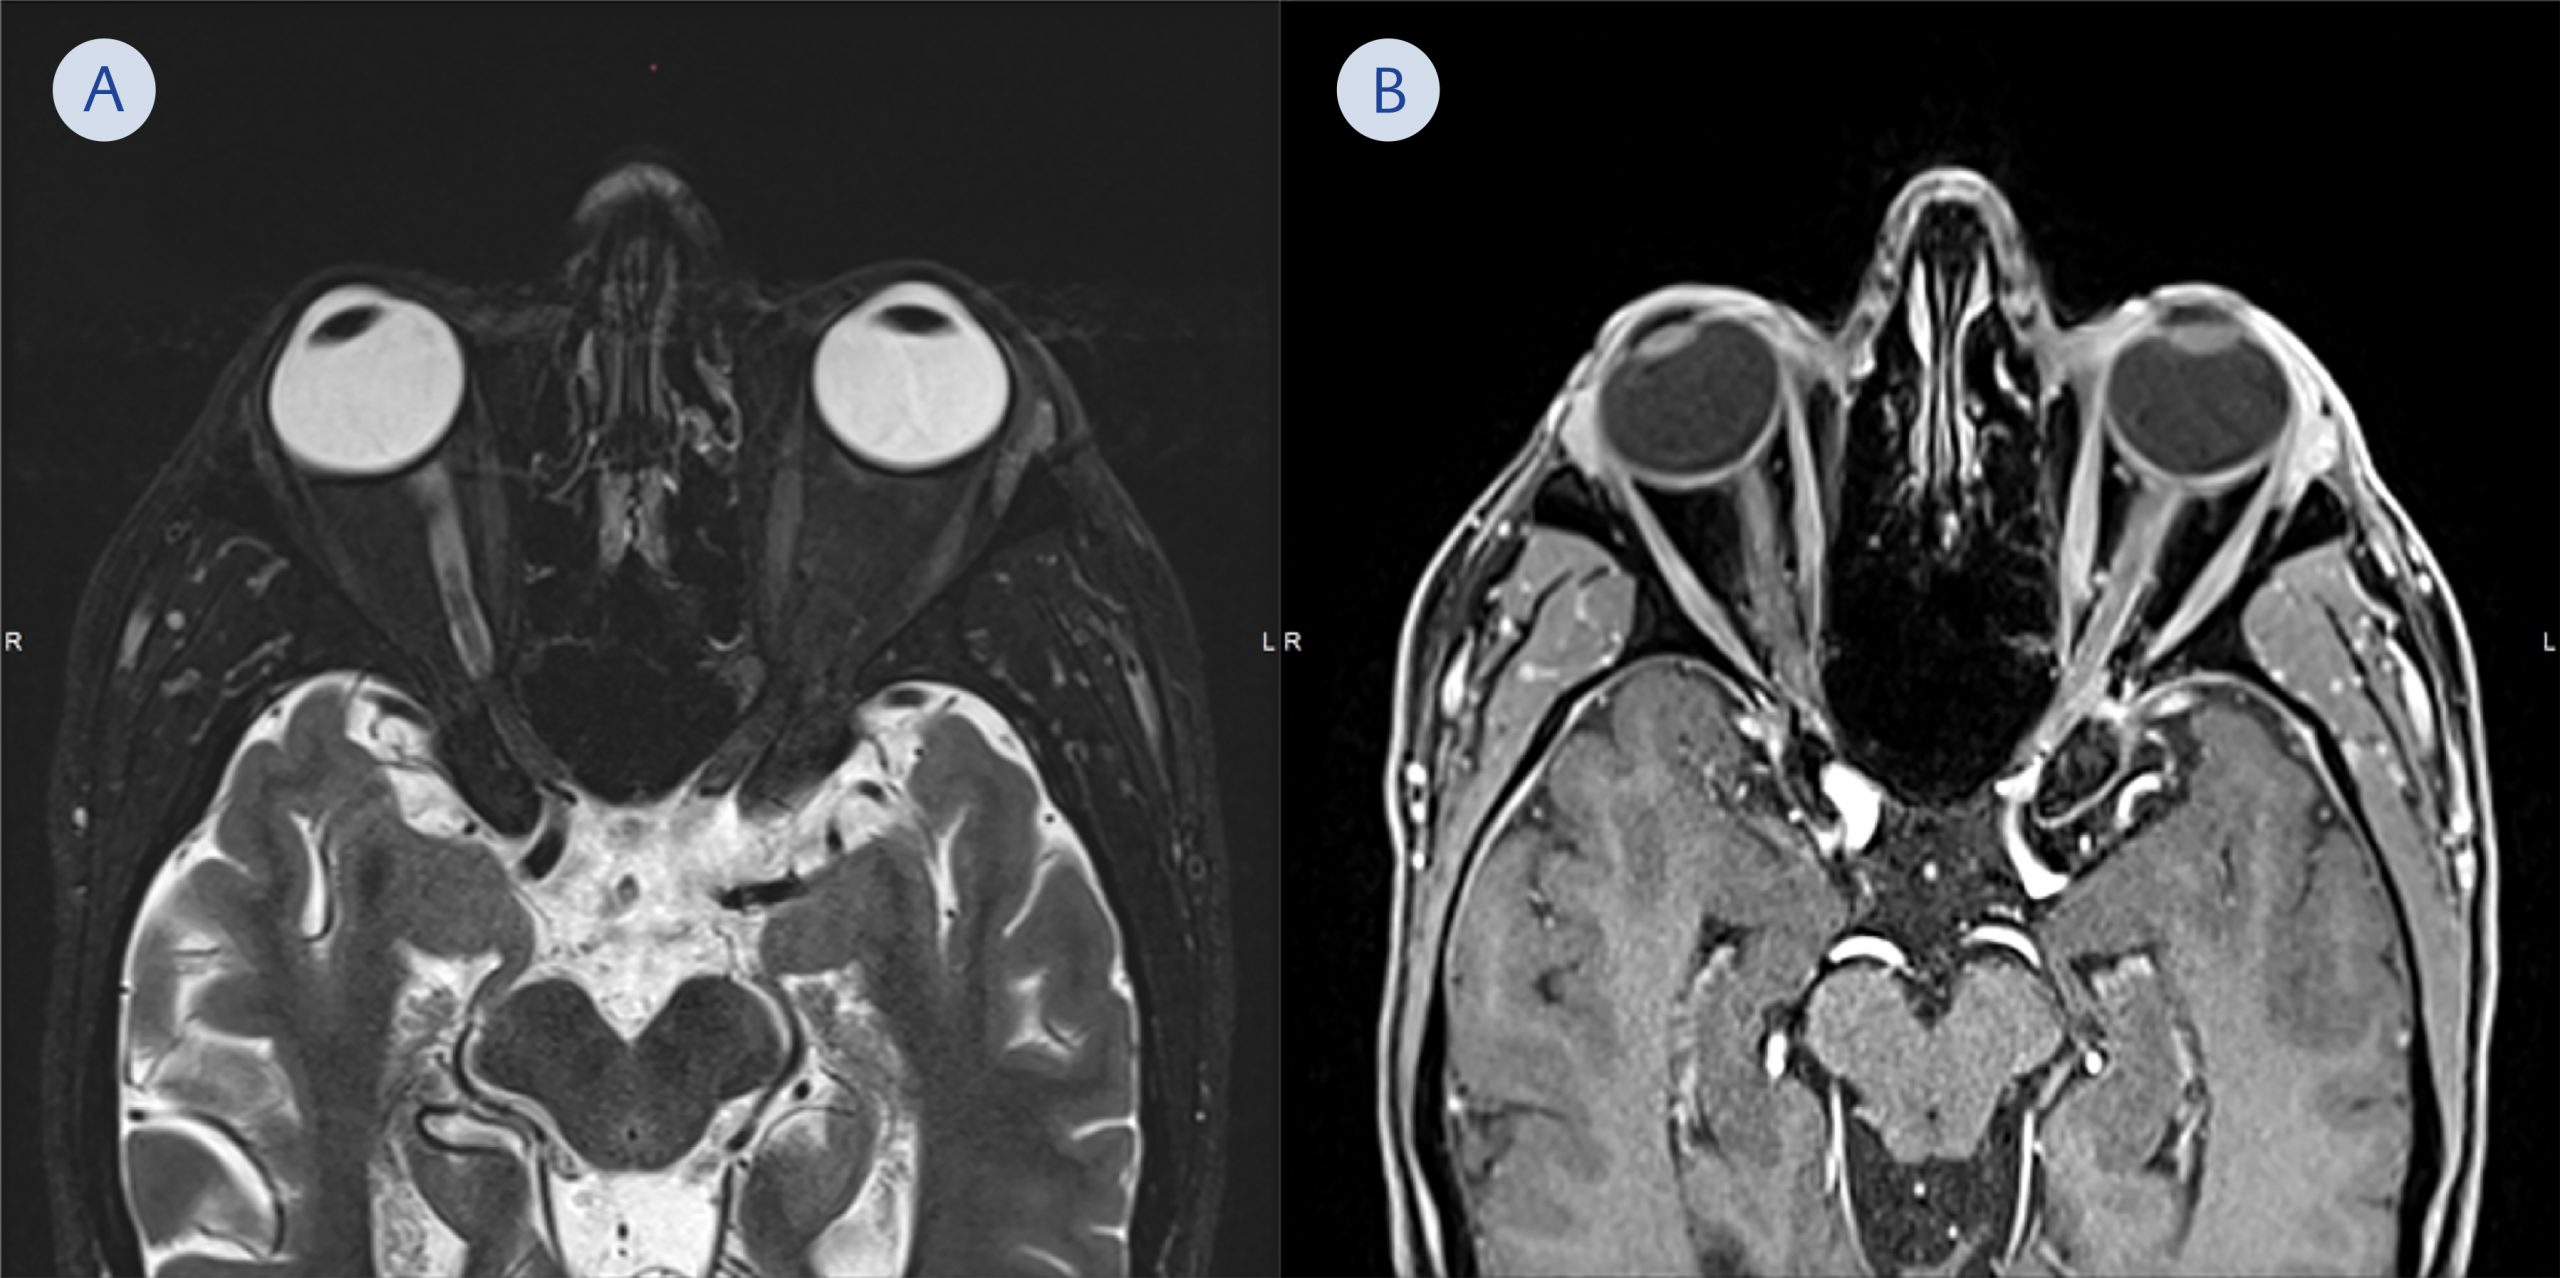 <b>Figure 3.</b> Axial magnetic resonance images of the patient taken 12 days after presentation. T2 weighted image shows swelling and edema of the extraocular muscles and optic nerve on the left side. There is no cerebrospinal fluid visible along the optic nerve tract on the left side when compared to the optic nerve tract on the right side (A). Post-contrast T1 weighted fat suppressed image shows enhancement of the extraocular muscles and the optic nerve sheath especially near the orbital apex. A subtle contrast enhancement is also seen within the bony orbital apex (B).